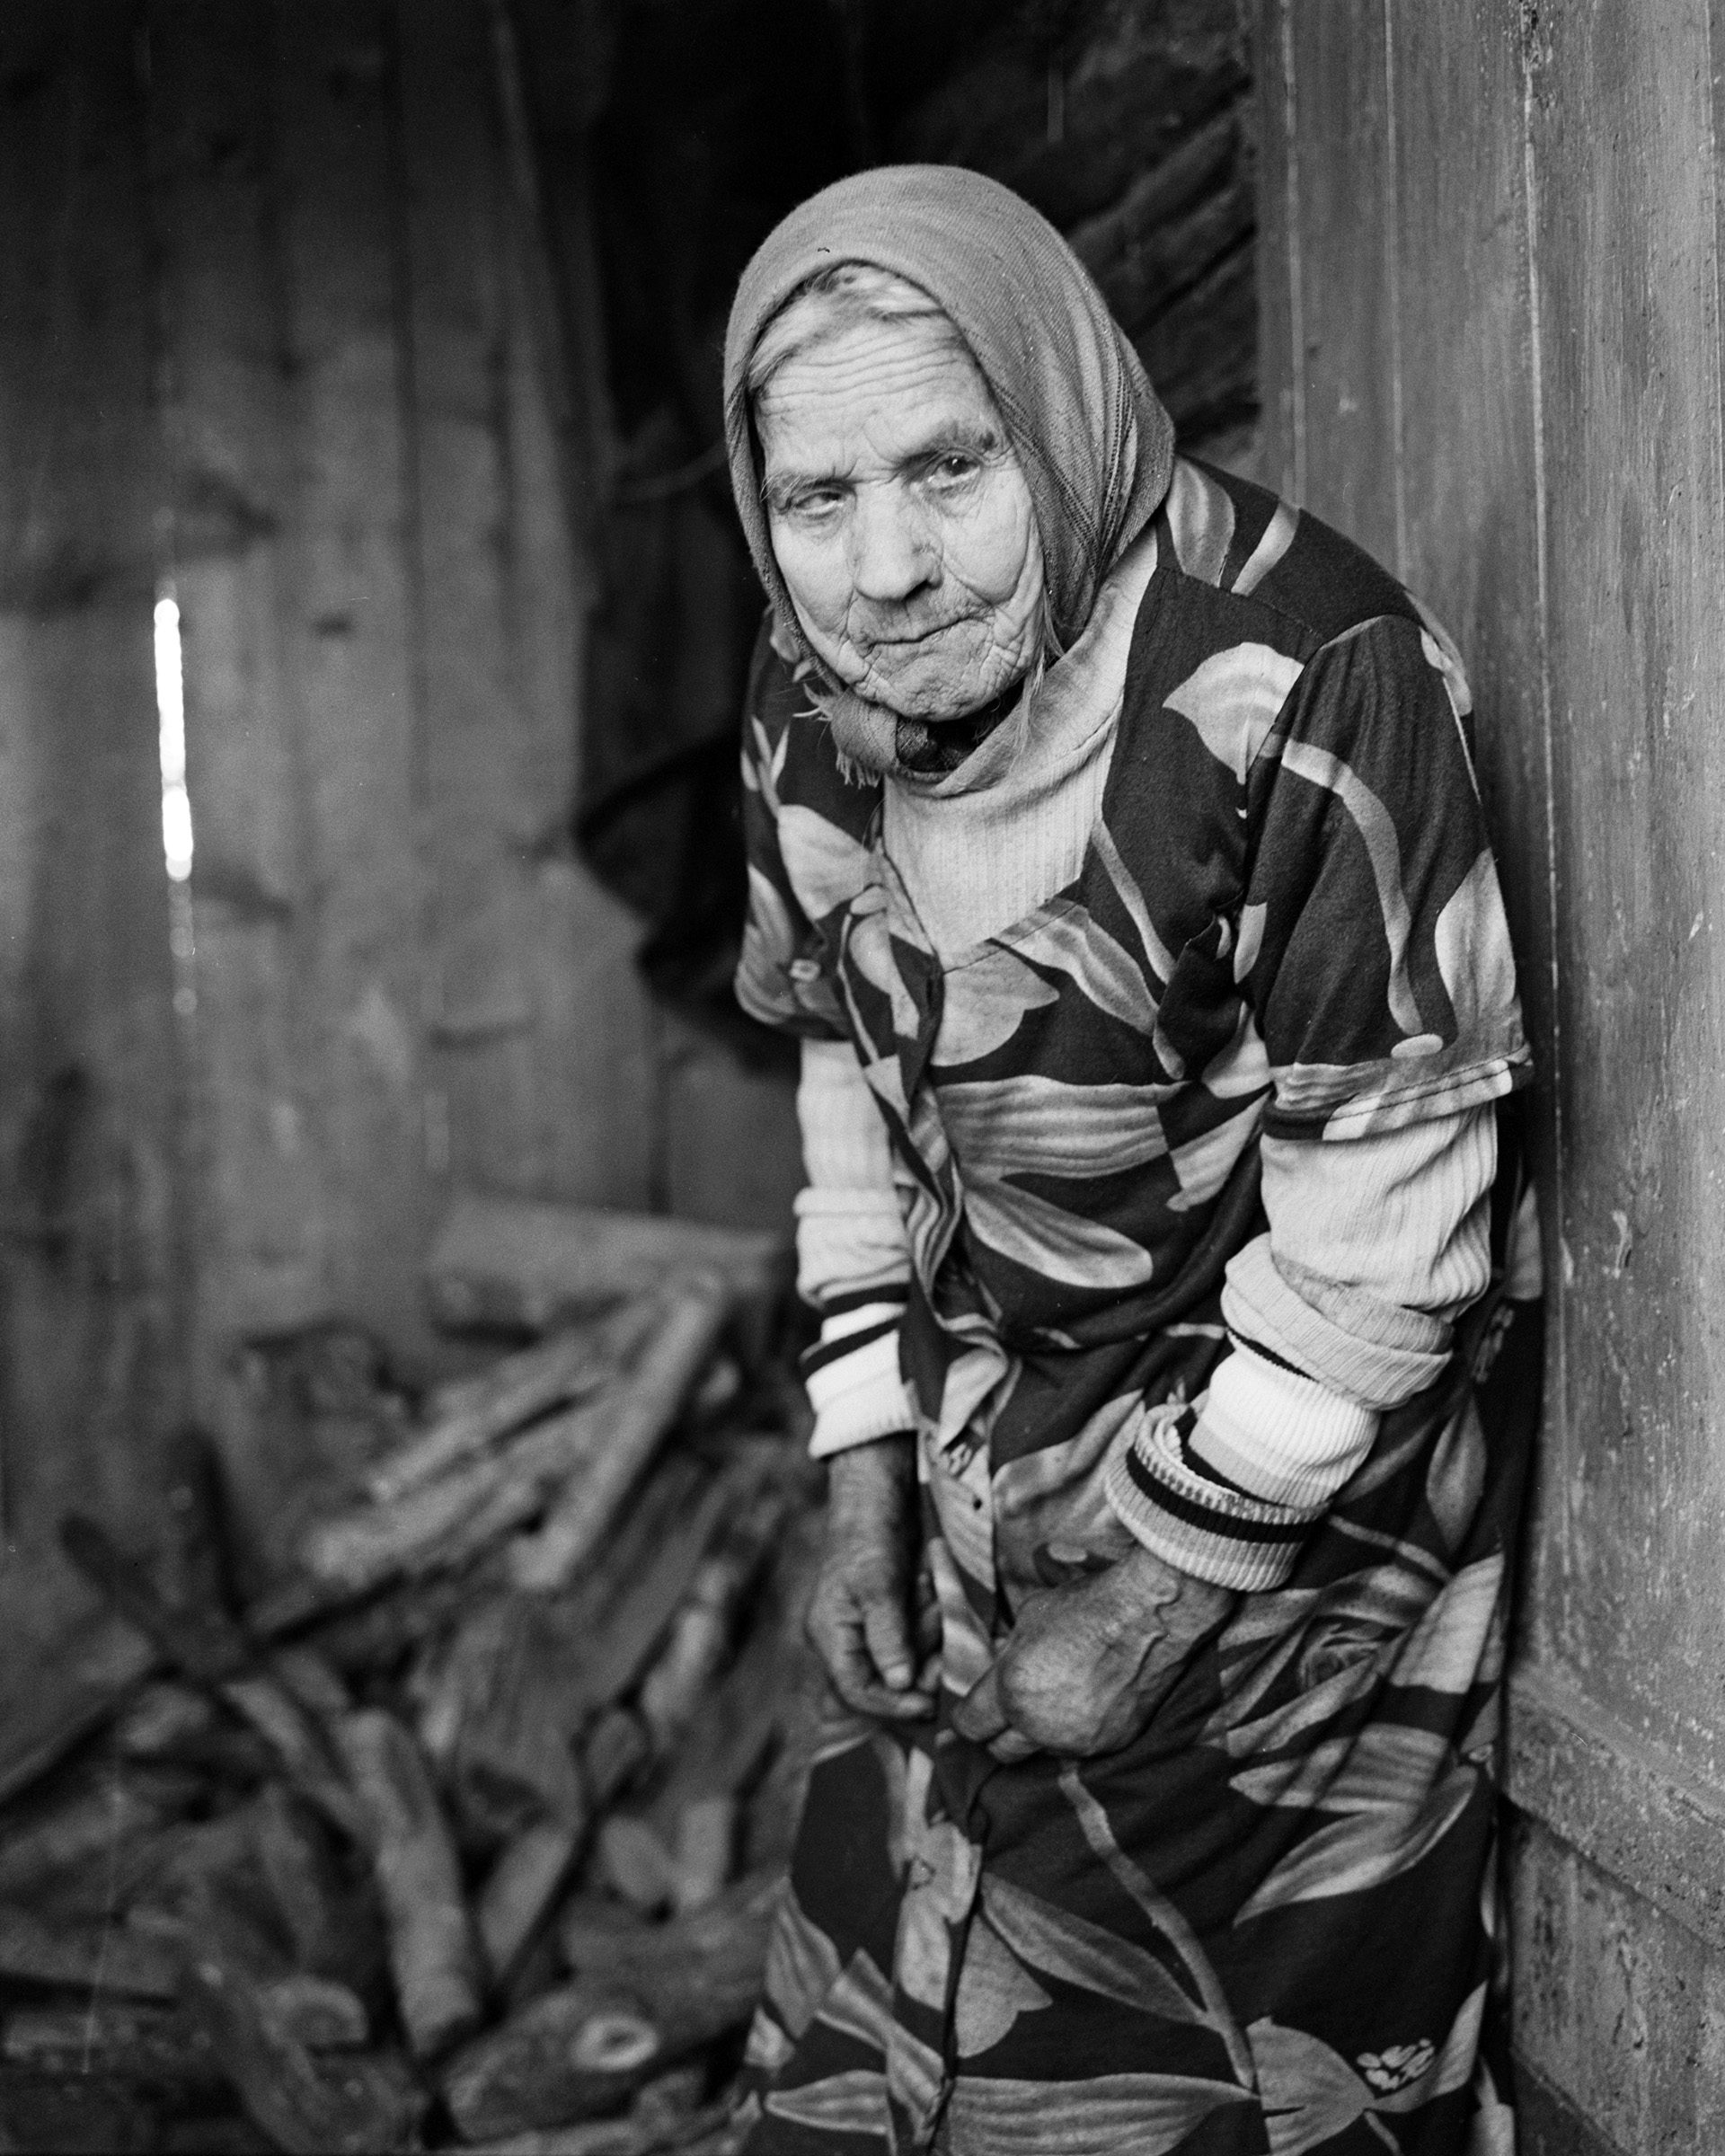 Black and white film image of Belarus traditional healer by Siarhiej Leskiec